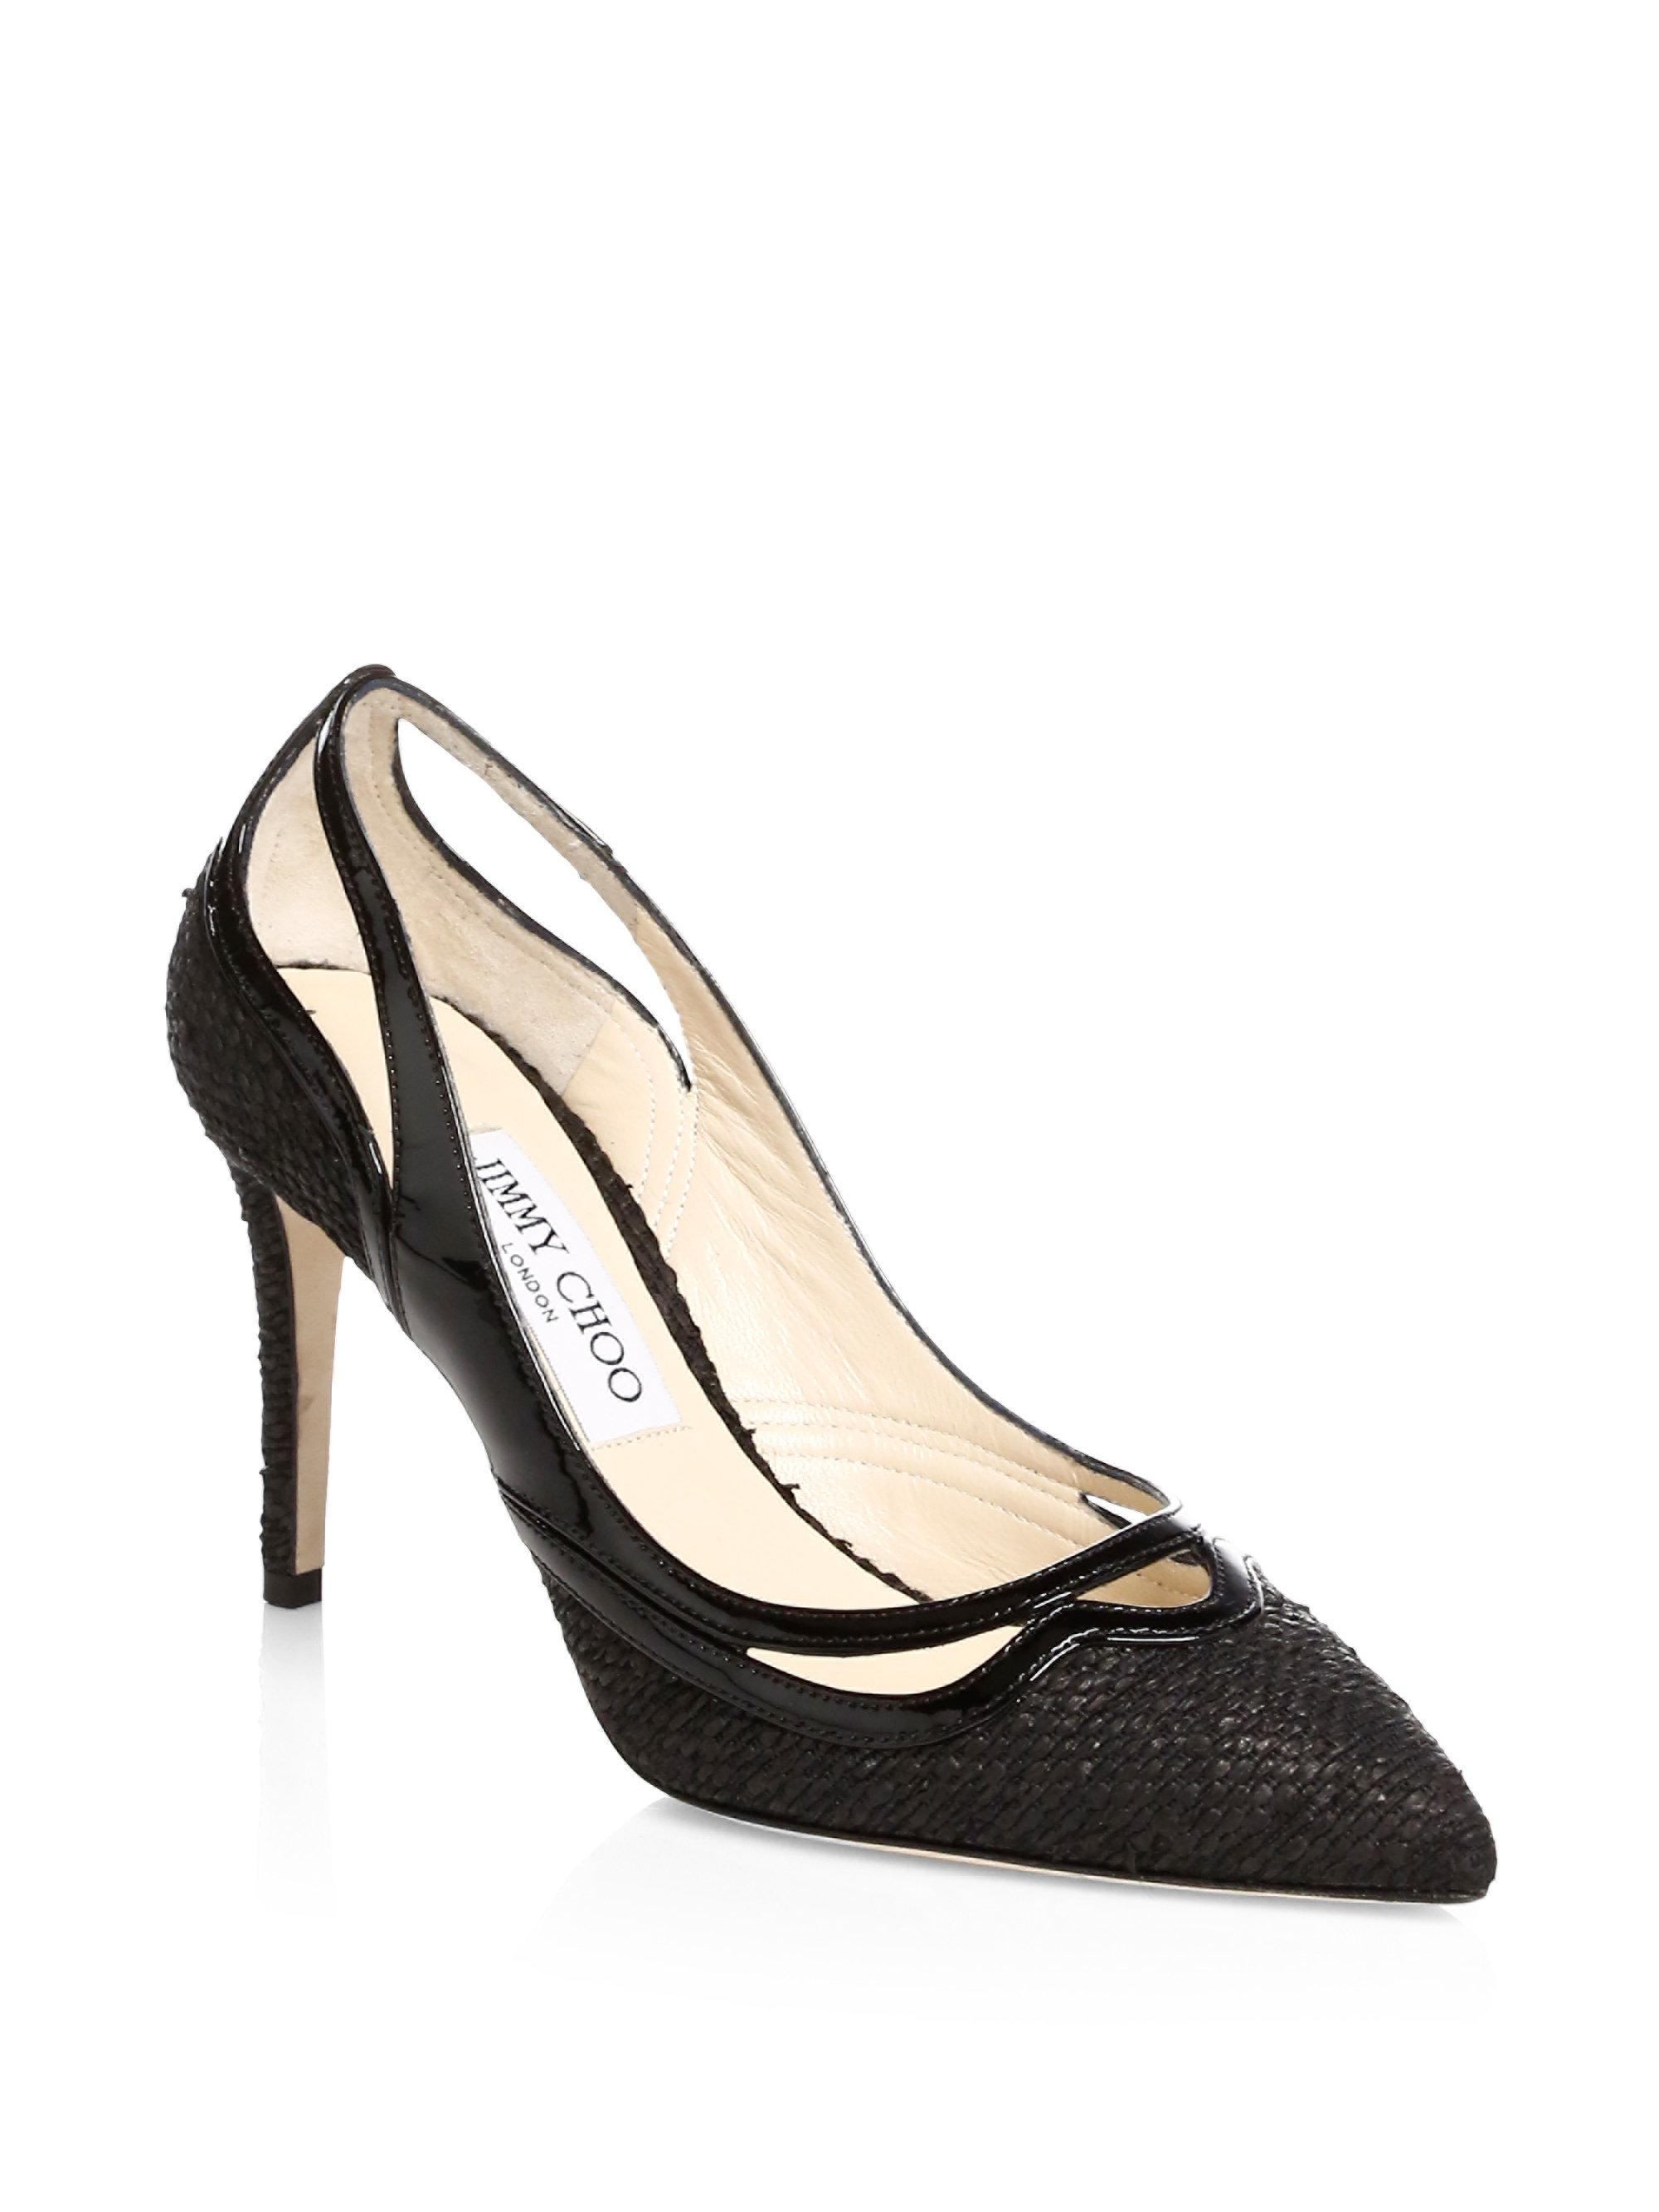 Jimmy choo Hickory Point-Toe Pumps